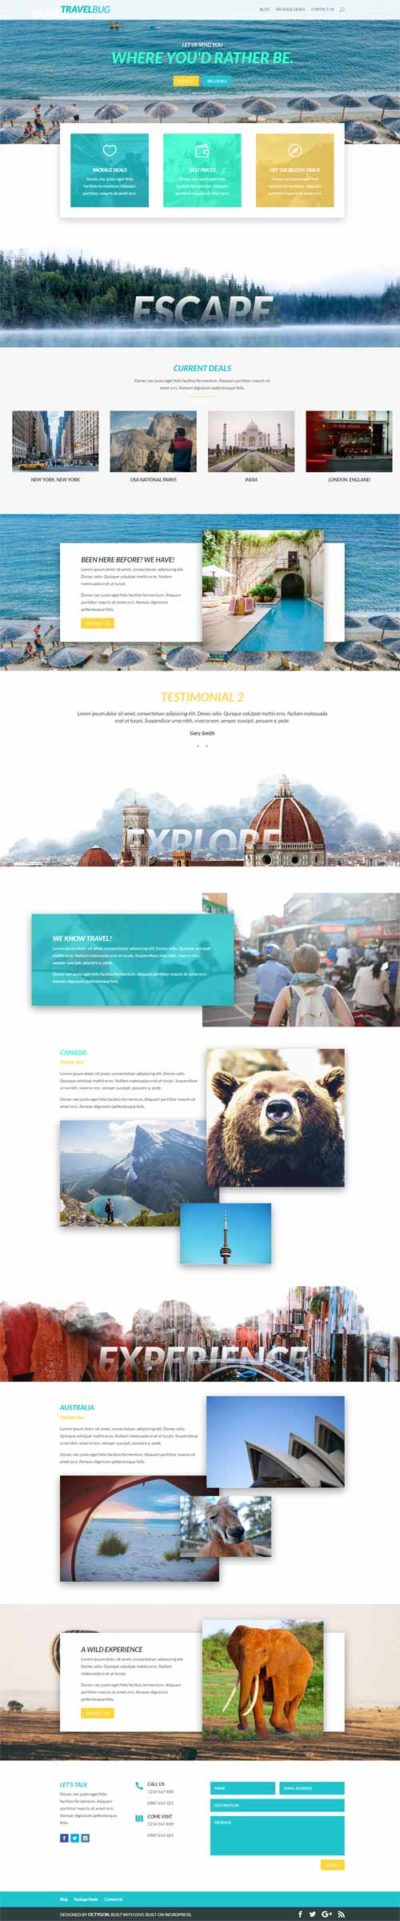 Divi layout for travel business